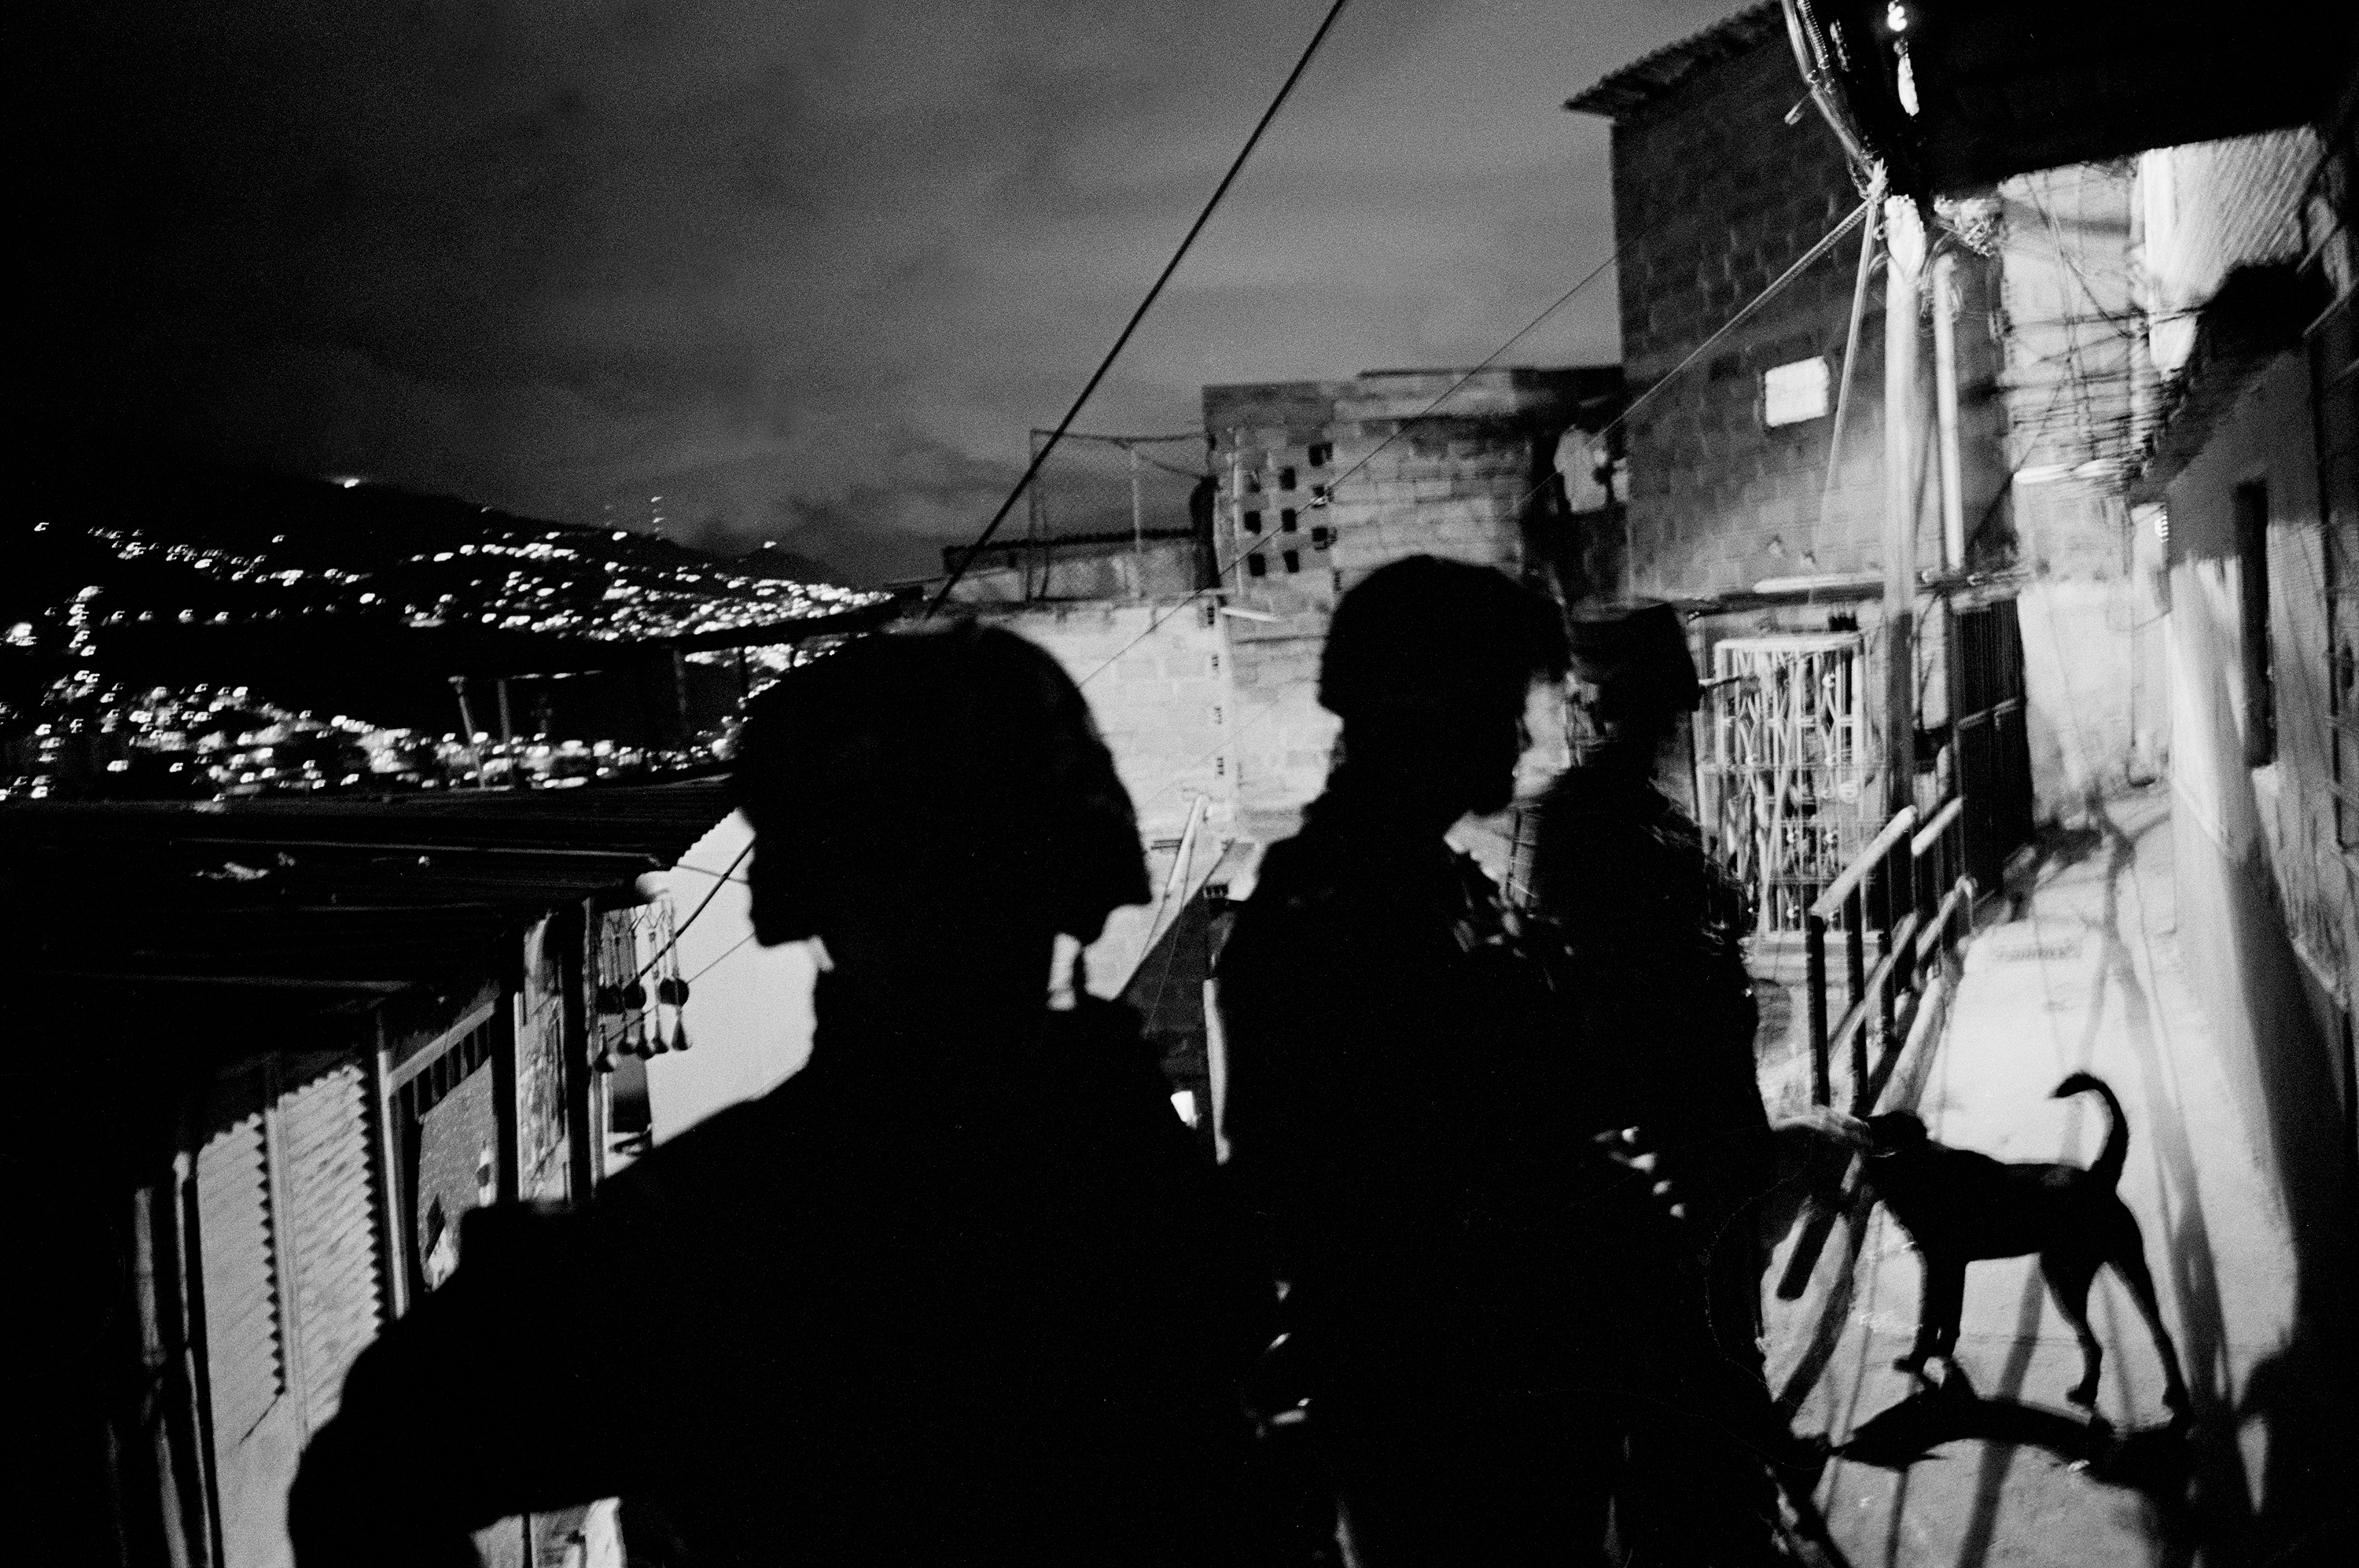 A group of soldiers patrol the streets of  La Comuna  number 13, a neighborhood with many FARC militants, and a stronghold for the distribution of cocaine, Medellin, Colombia, 2011.